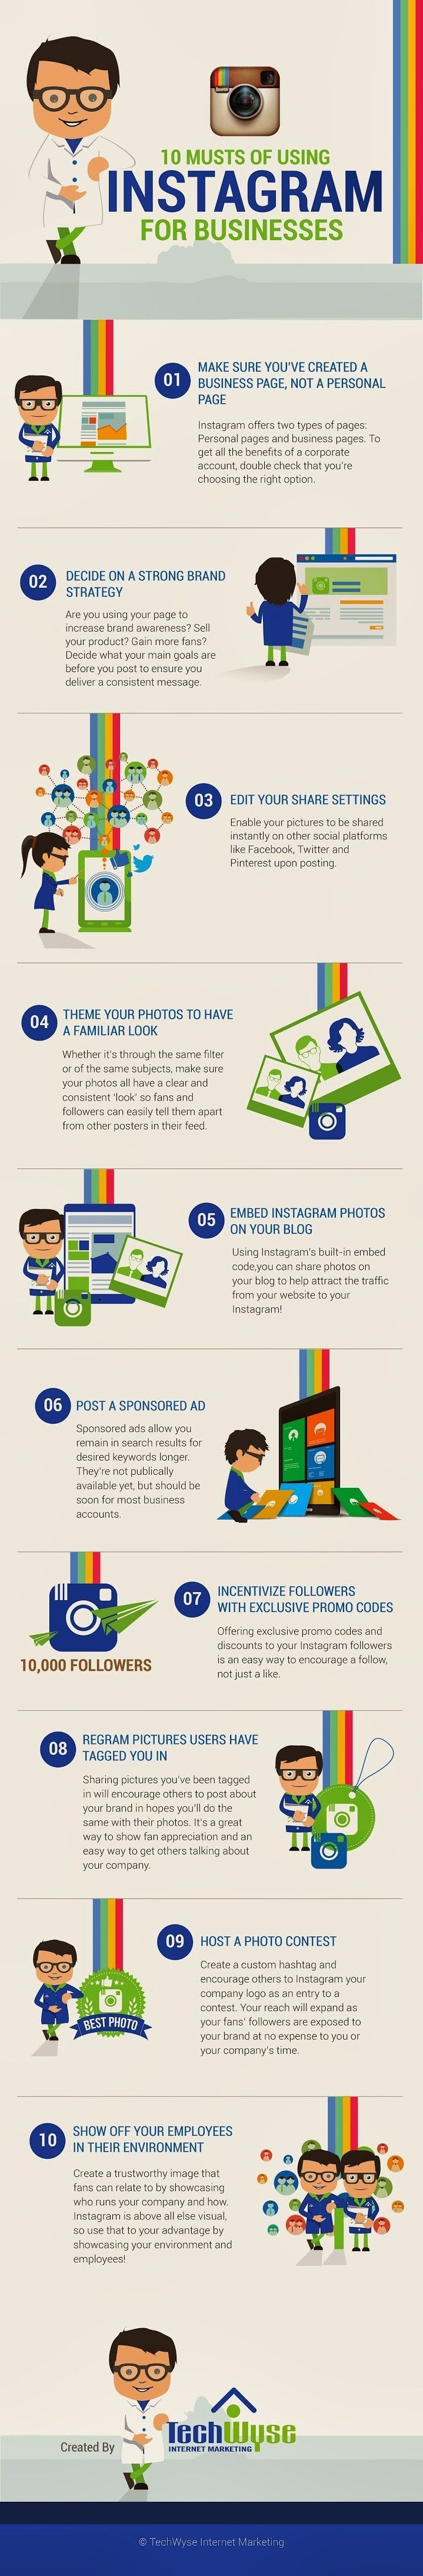 #Instagram for business - #infographic